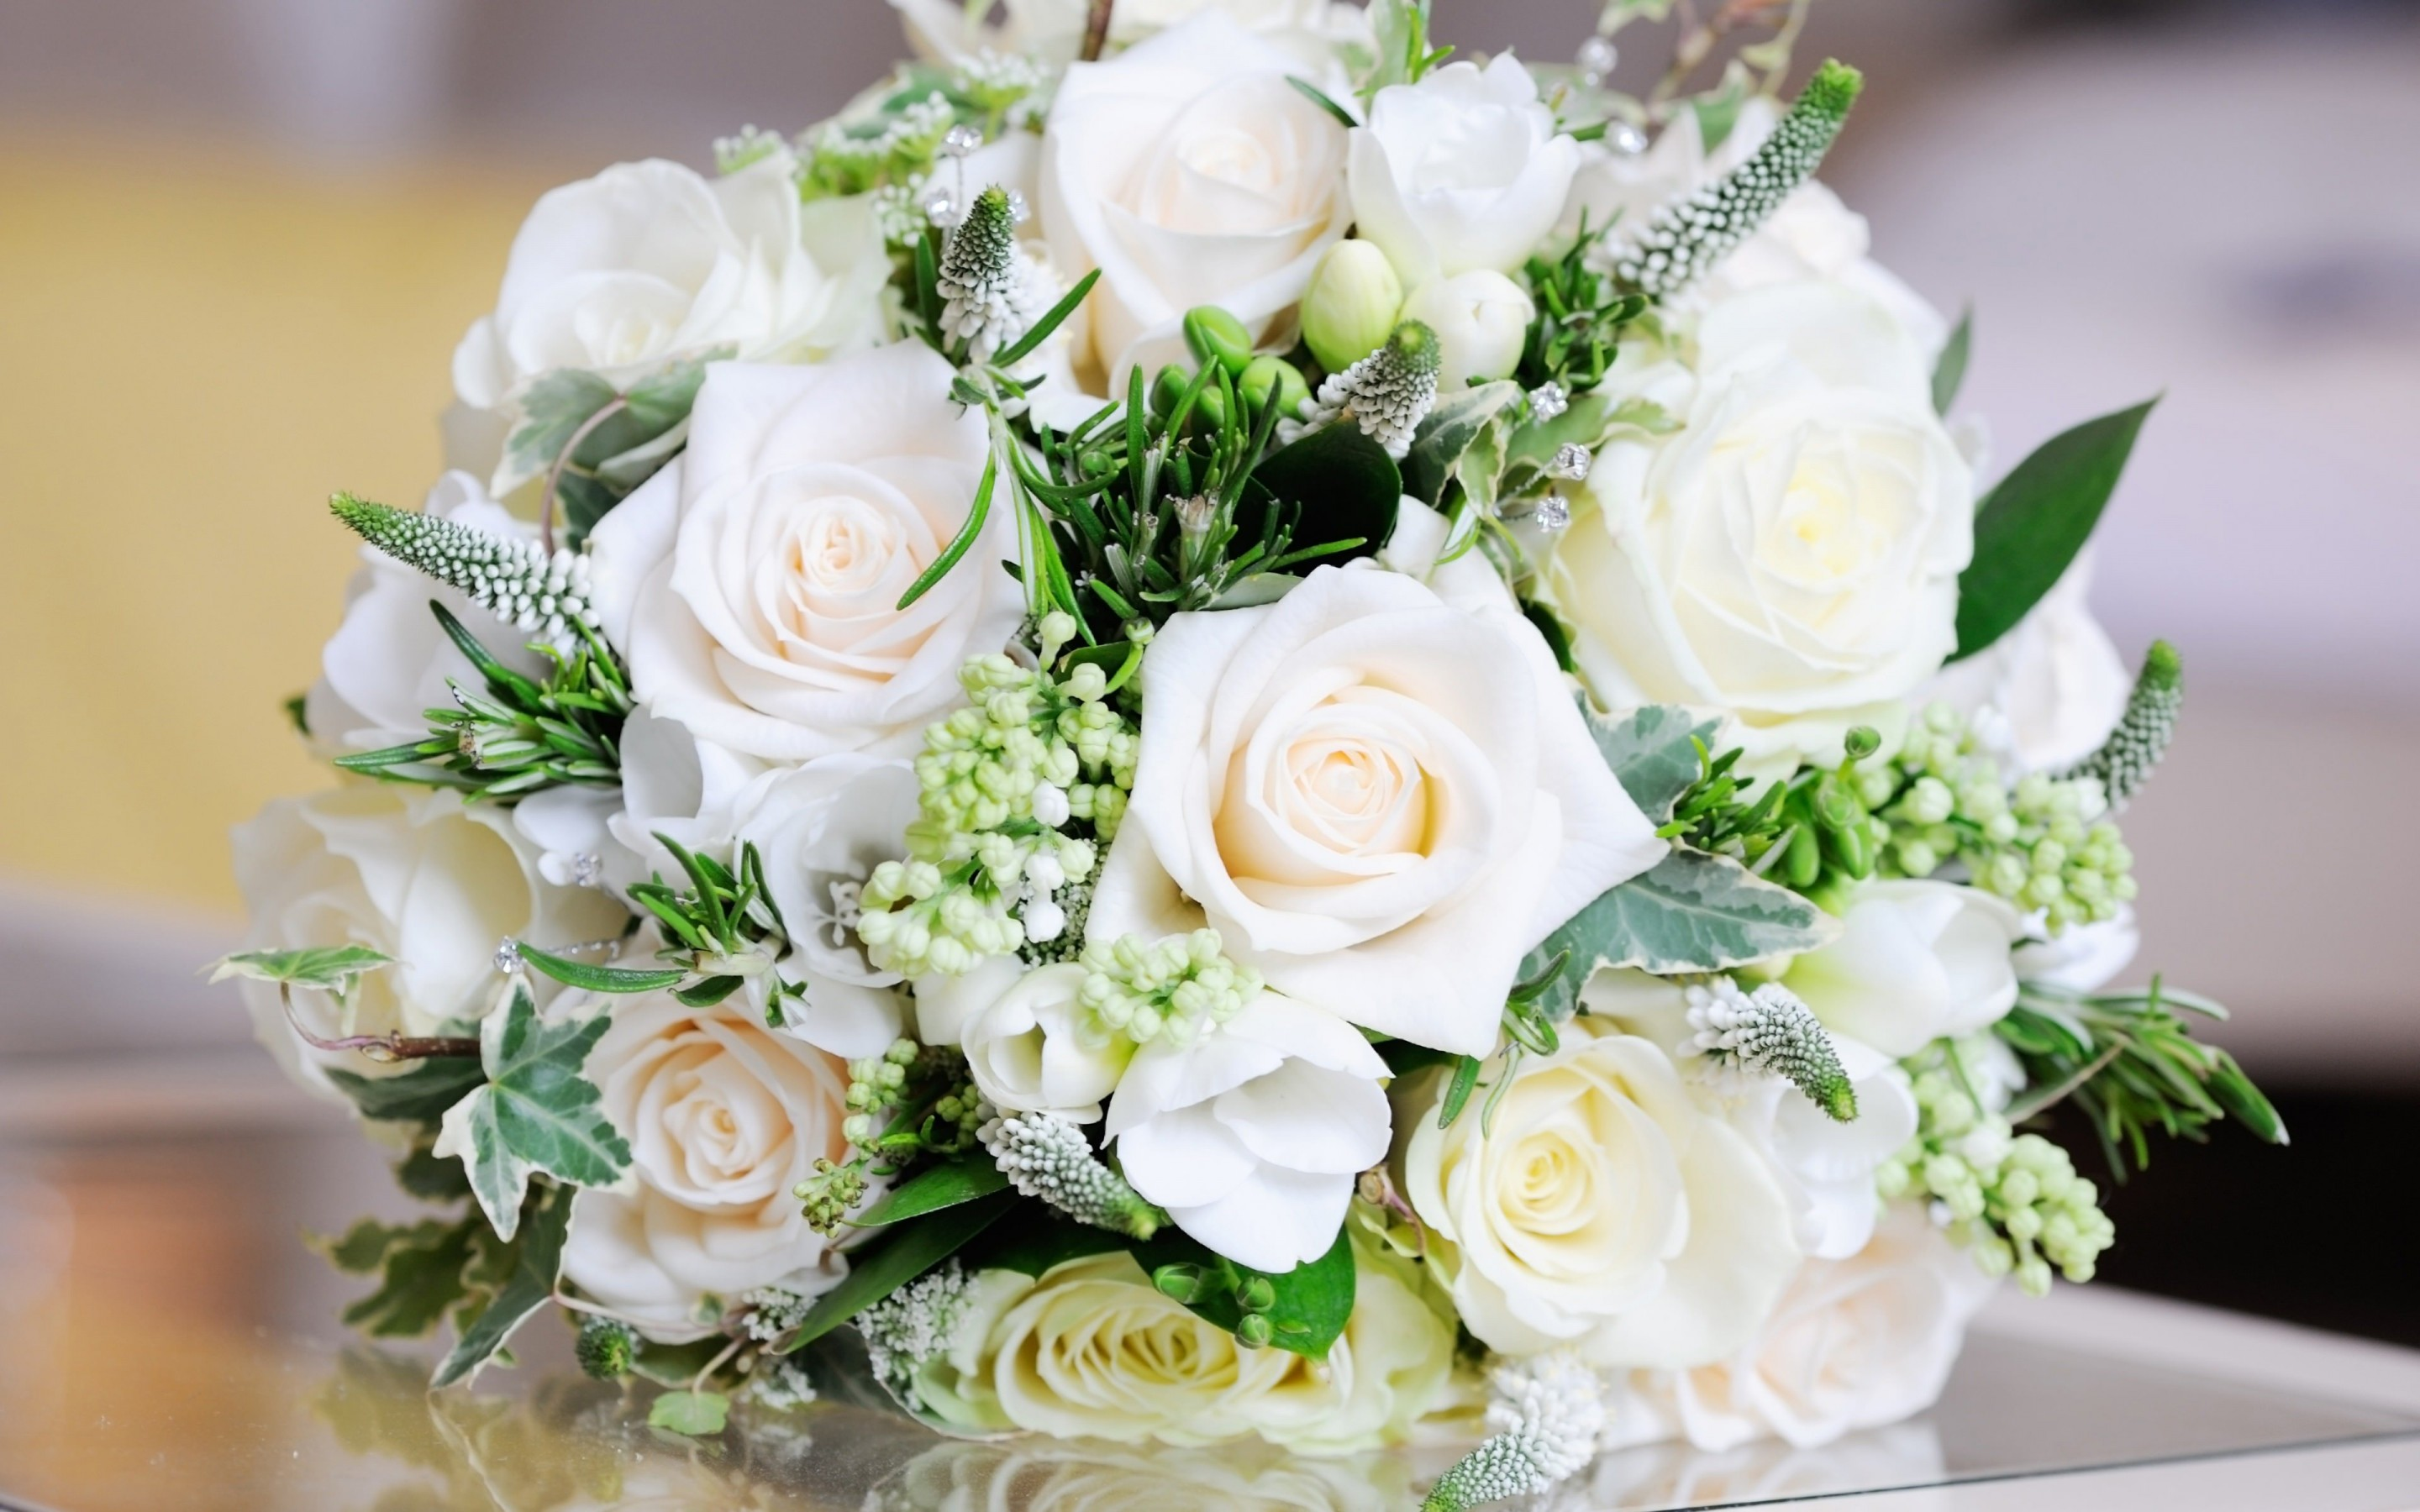 Beautiful White Roses Bouquet Wallpaper for Desktop 2880x1800